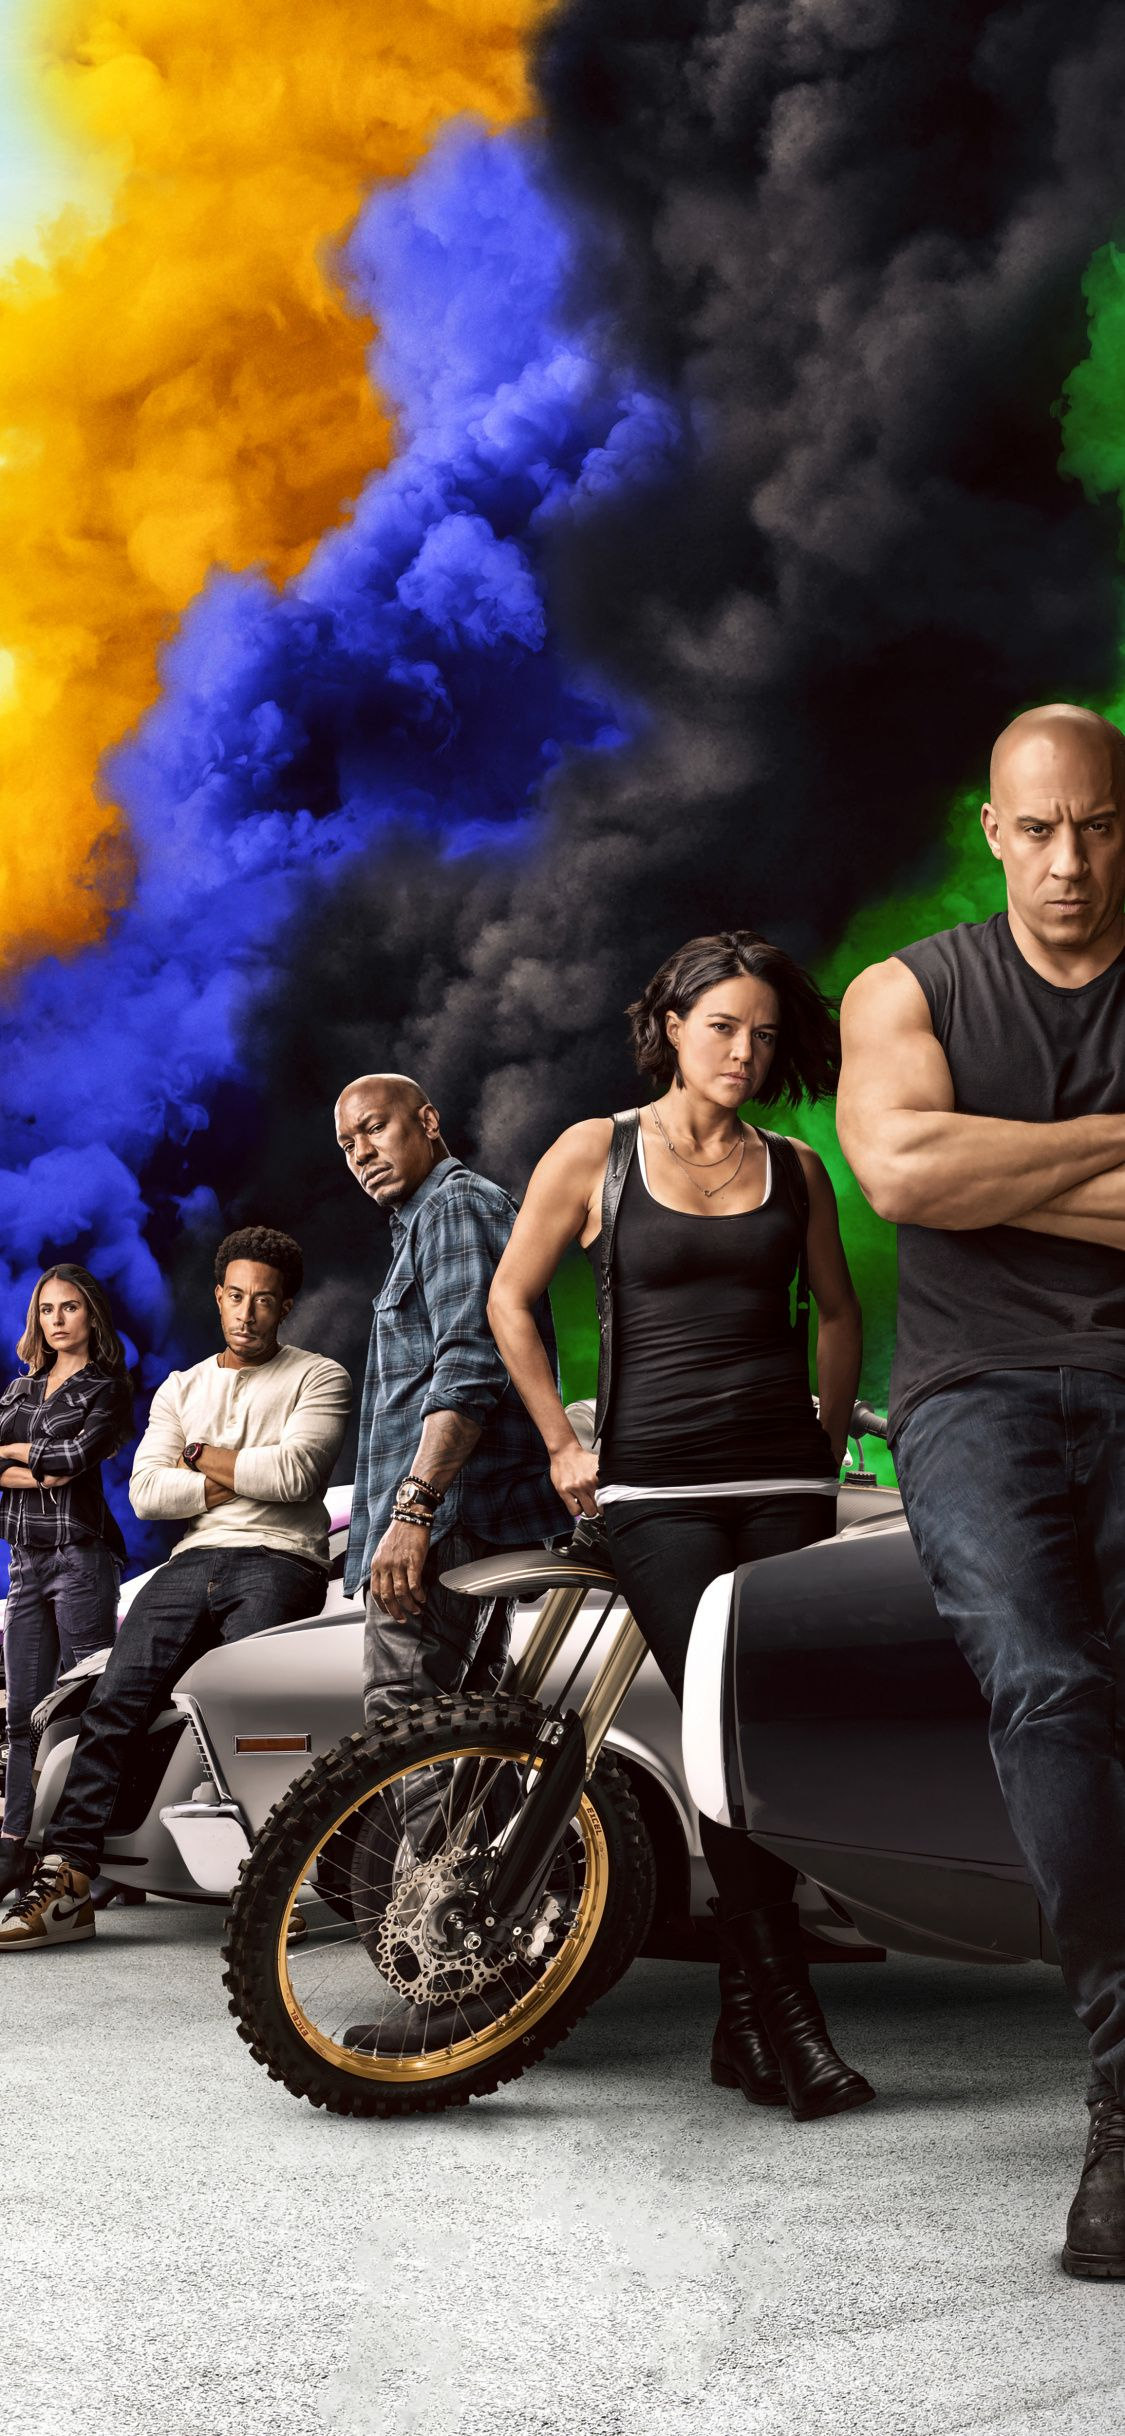 1125x2436 Movie 2020, cast, Fast & Furious 9 wallpaper in